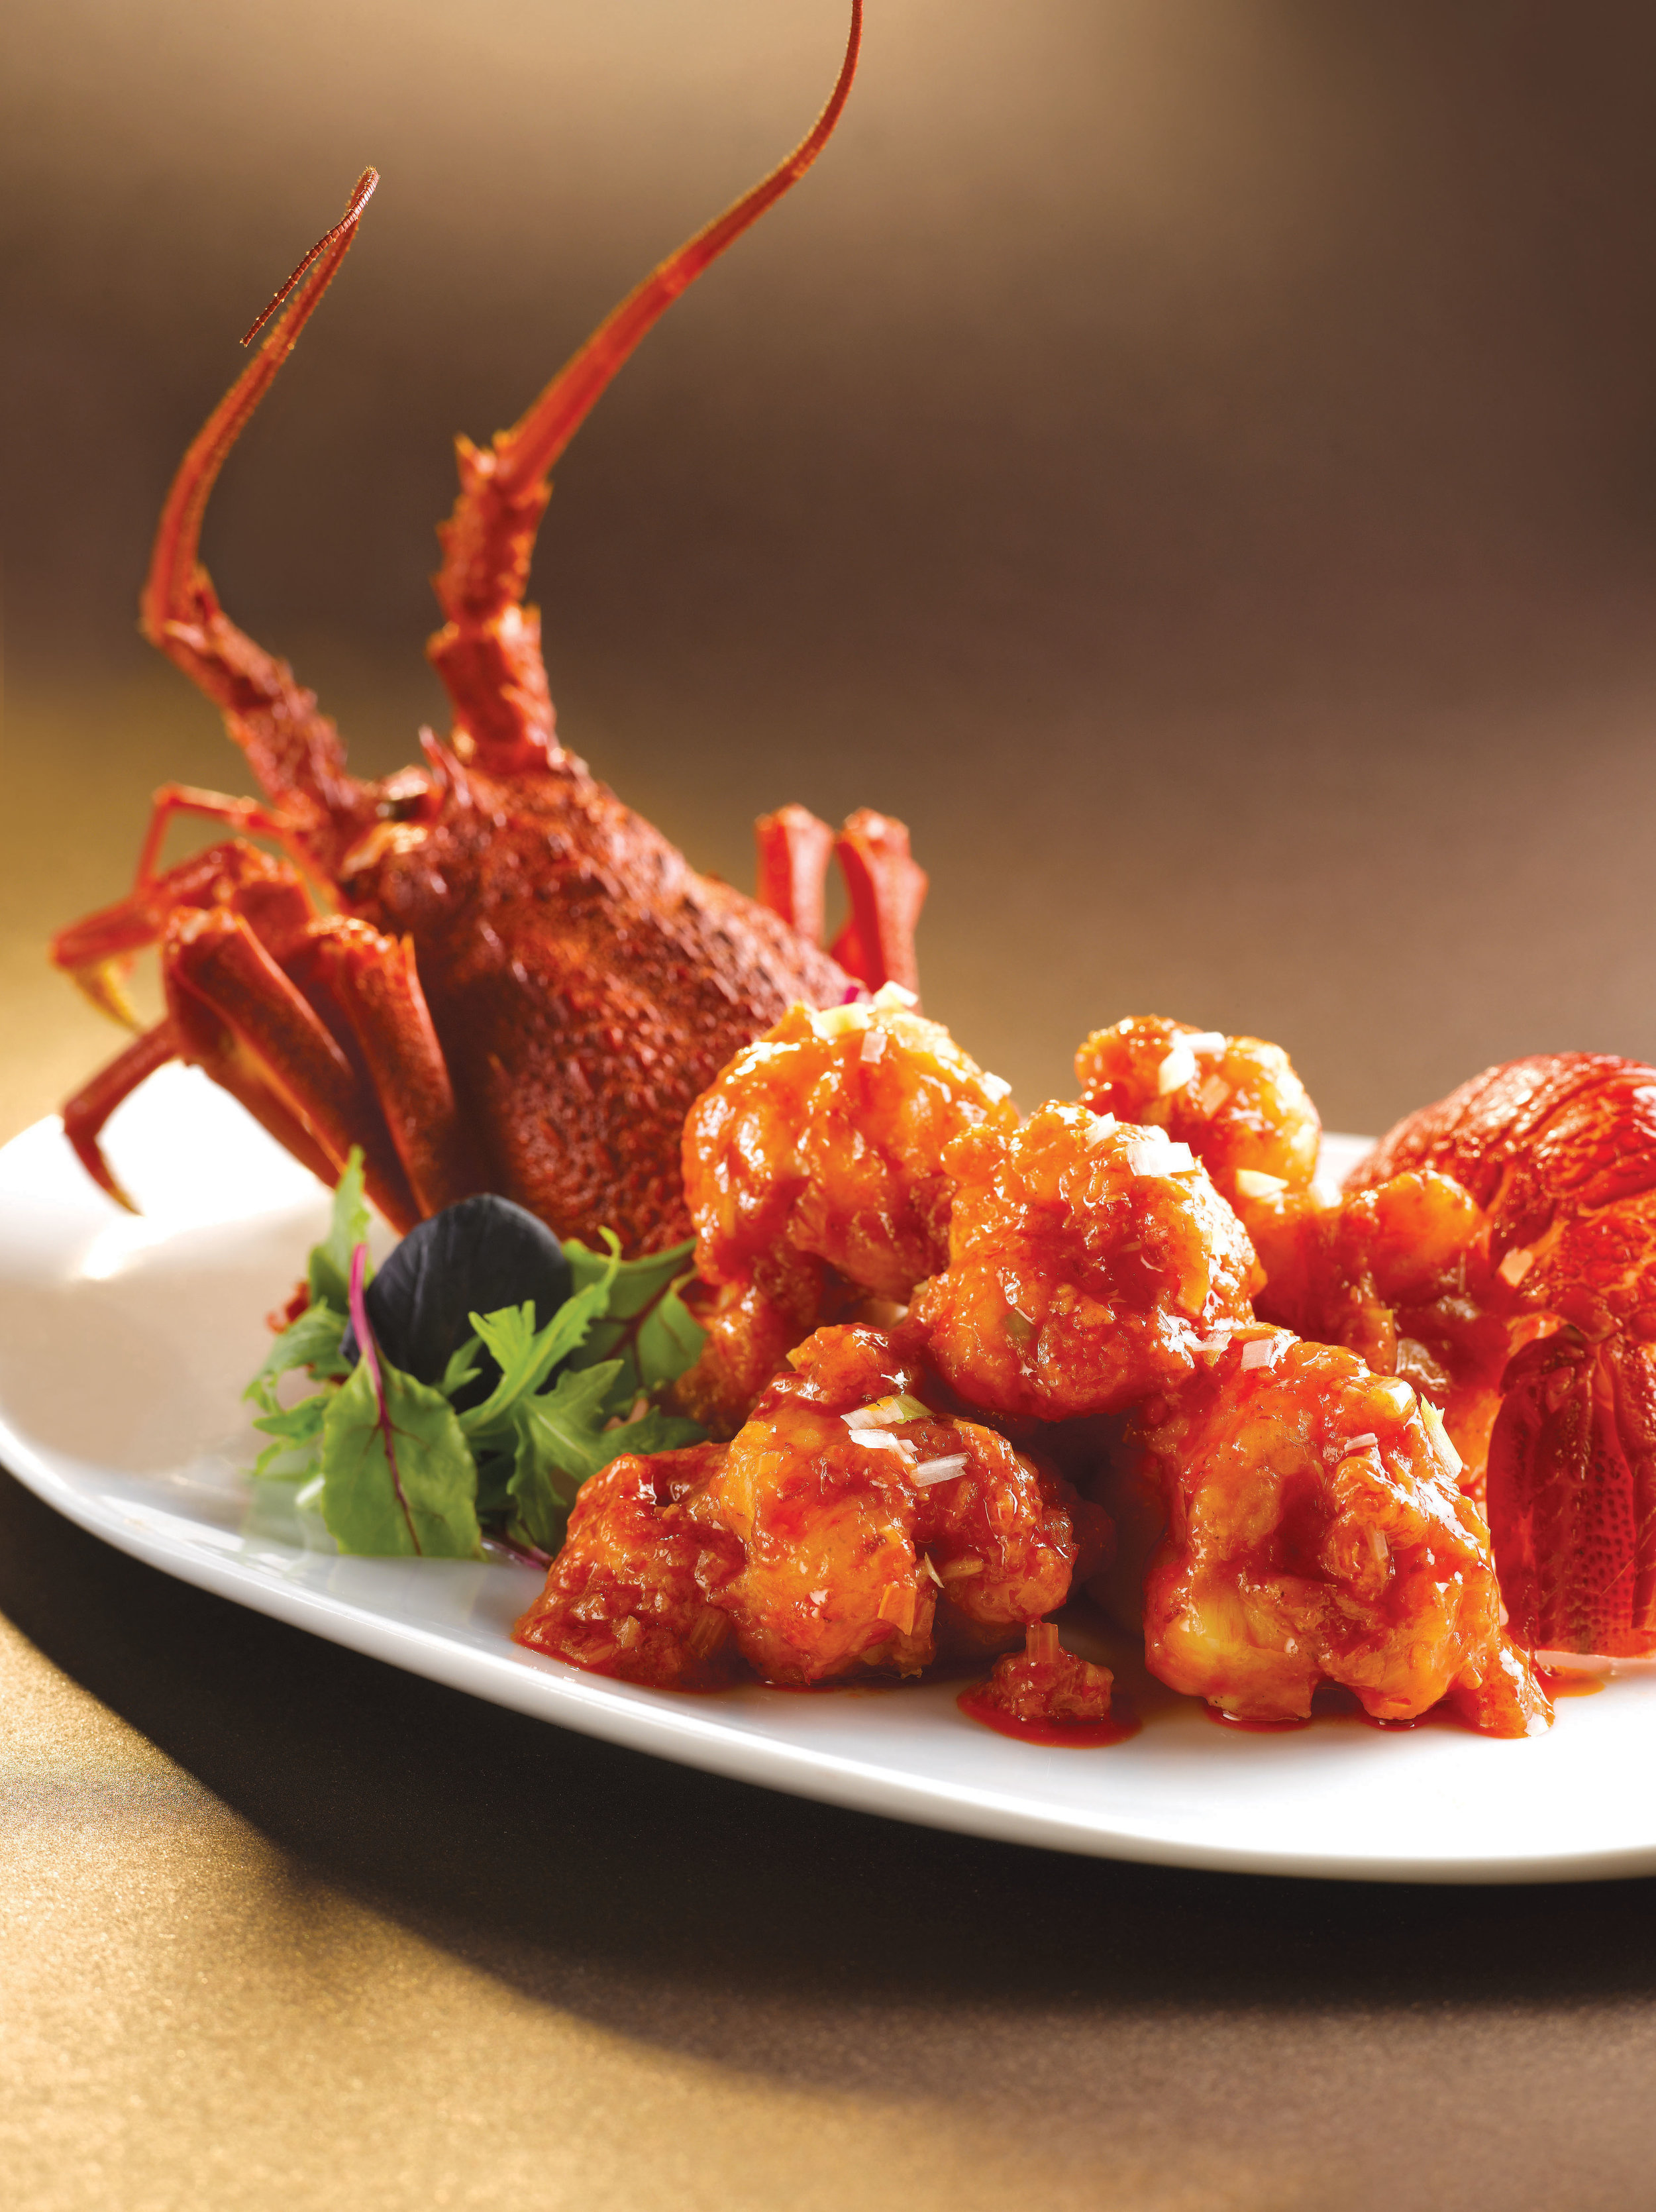 Stir-fried lobster with chilli sauce.jpg